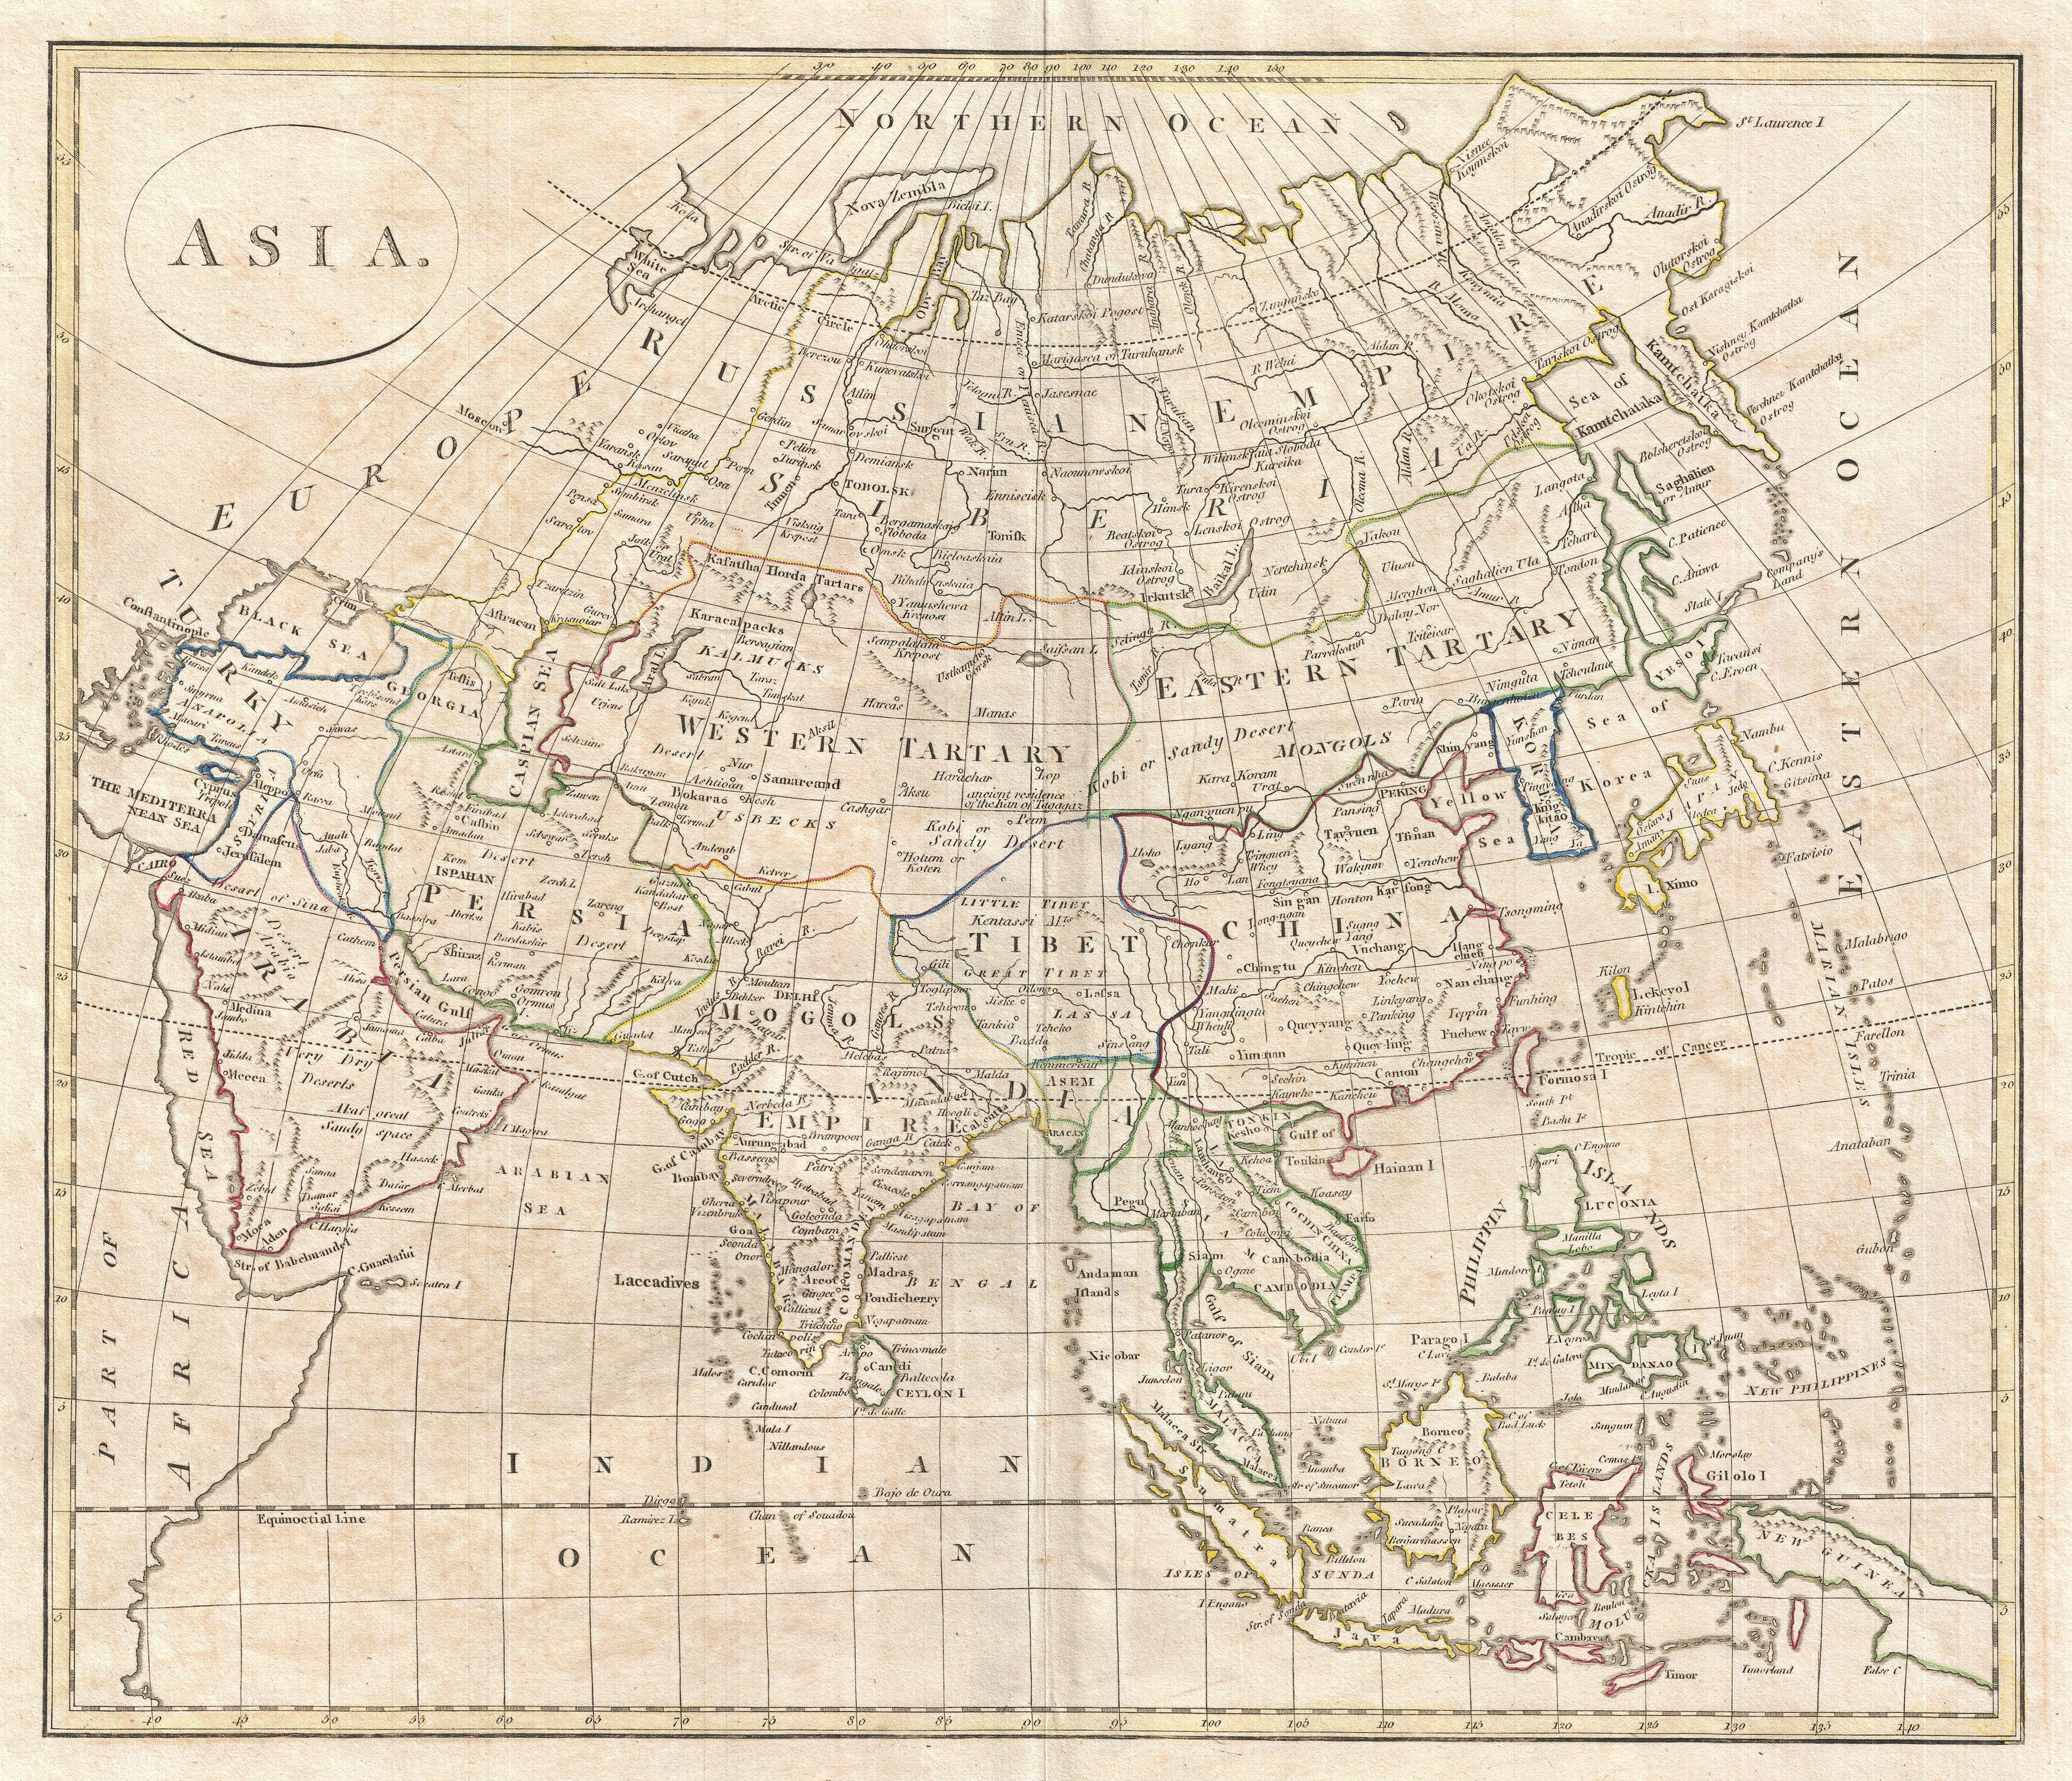 http://upload.wikimedia.org/wikipedia/commons/5/52/1799_Clement_Cruttwell_Map_of_Asia_-_Geographicus_-_Asia-cruttwell-1799.jpg